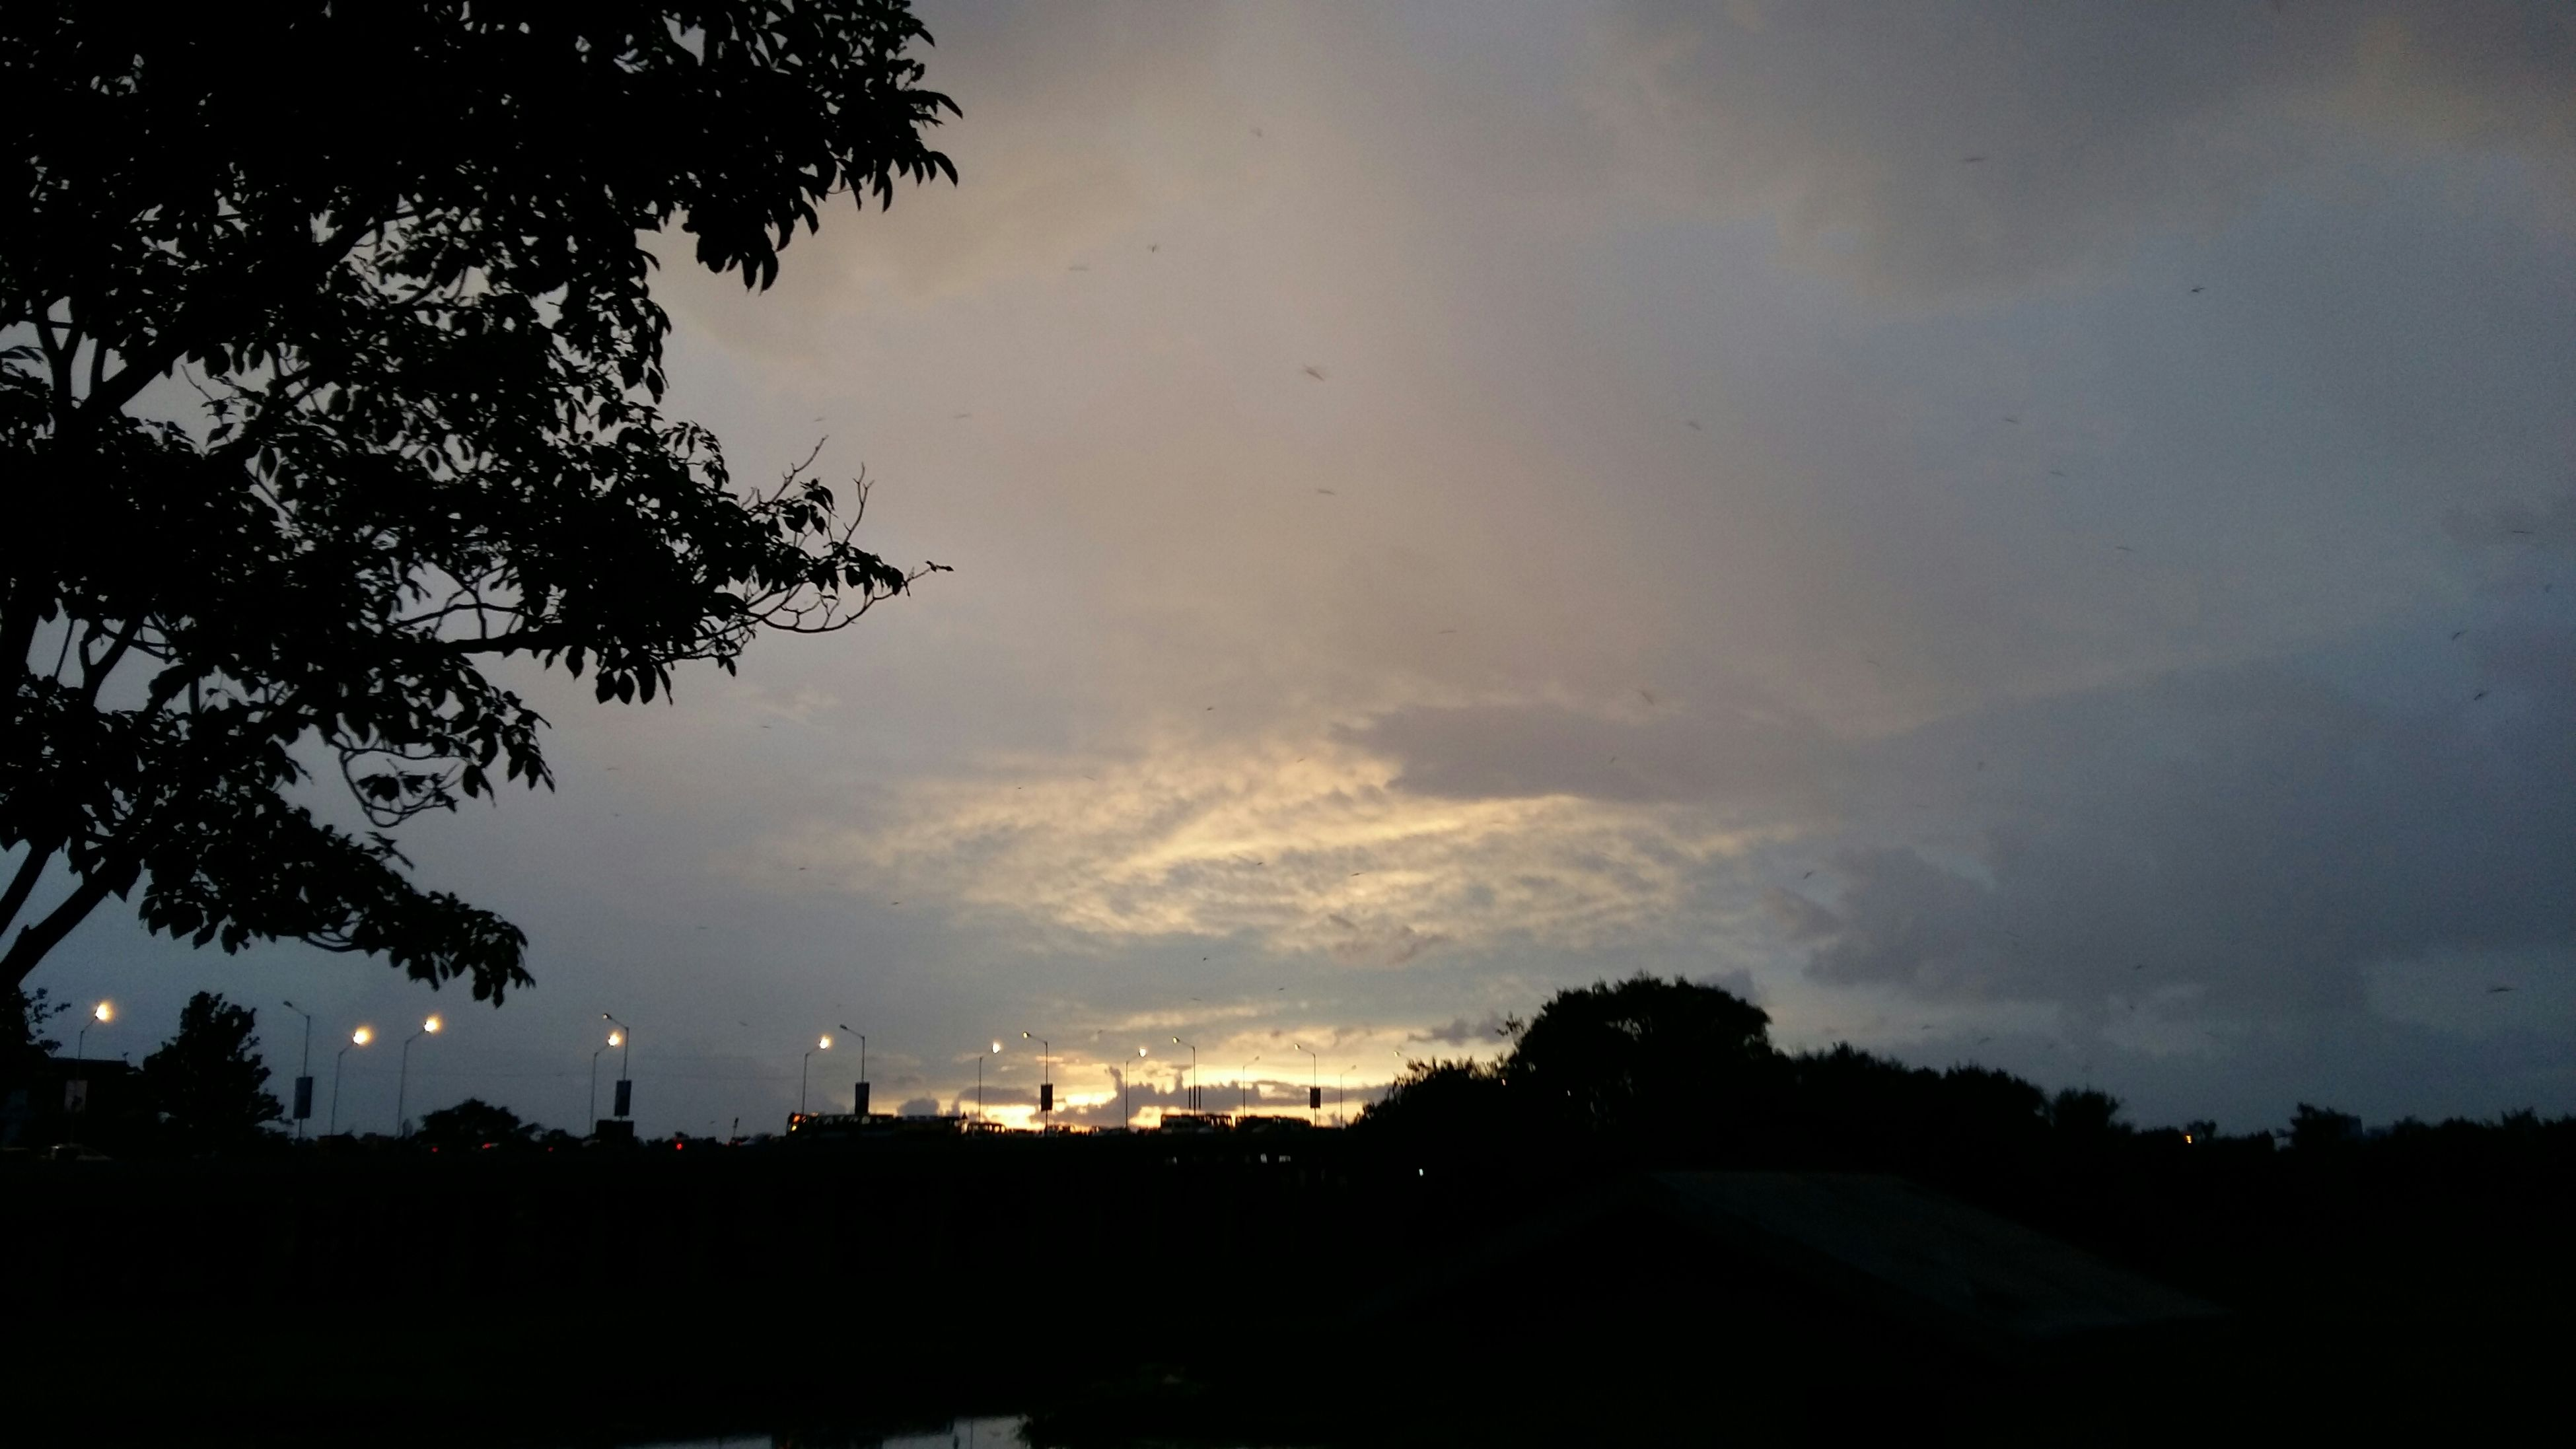 silhouette, sky, tree, sunset, cloud - sky, dusk, tranquility, beauty in nature, low angle view, scenics, nature, tranquil scene, cloudy, building exterior, built structure, cloud, outdoors, dark, architecture, no people